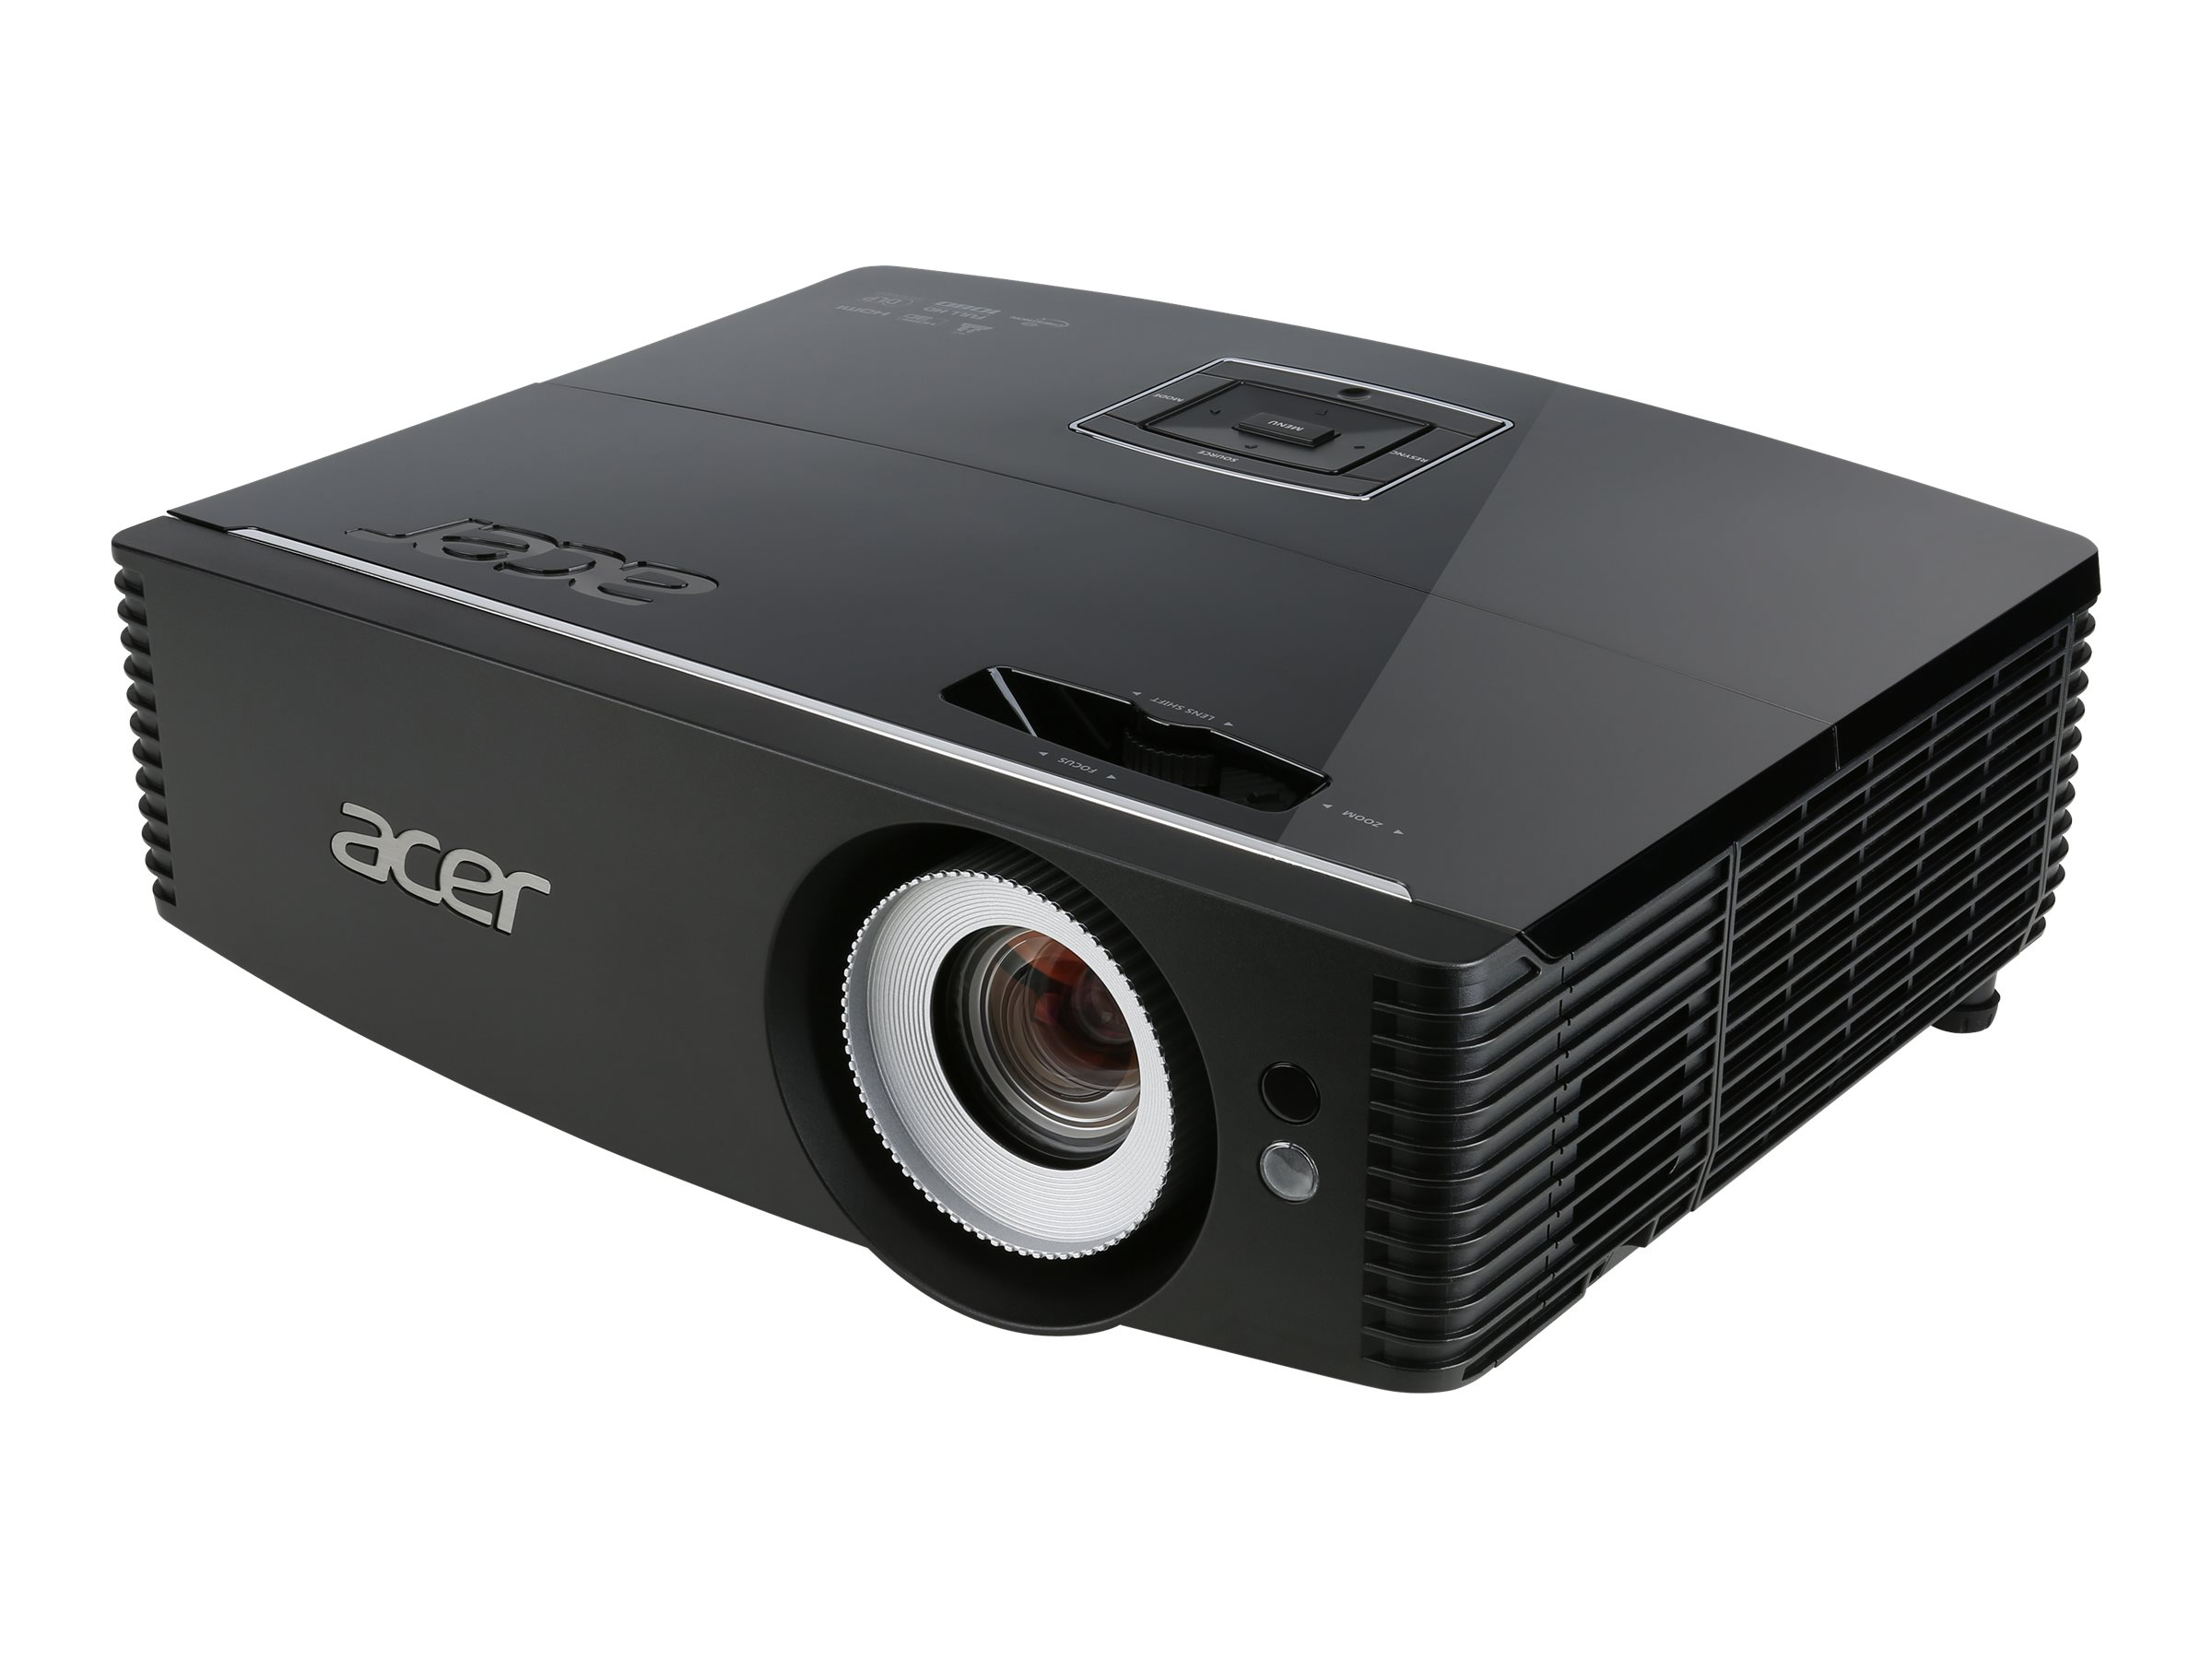 Acer P6500 - DLP-Projektor - UHP - 3D - 5000 lm - Full HD (1920 x 1080)